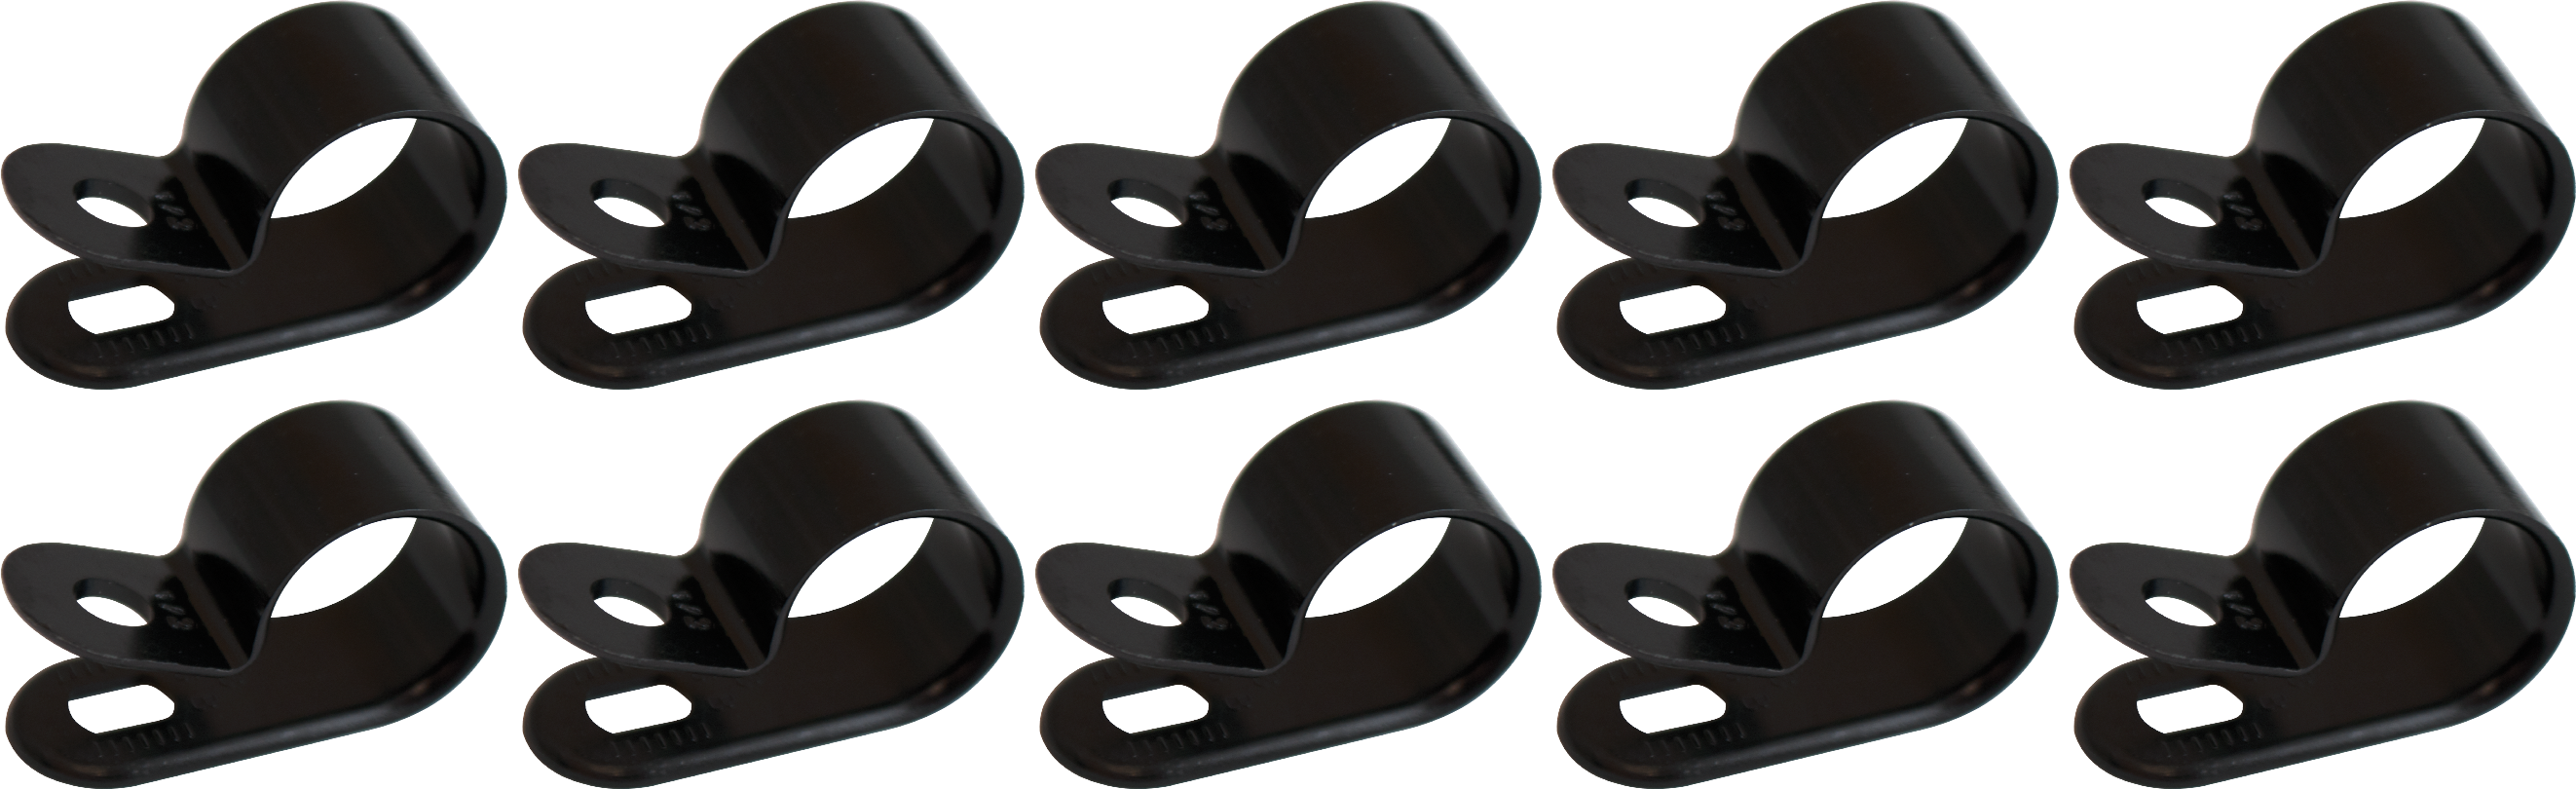 """Cable Clamp - for 1/2"""" Cable Diameter, Nylon"""